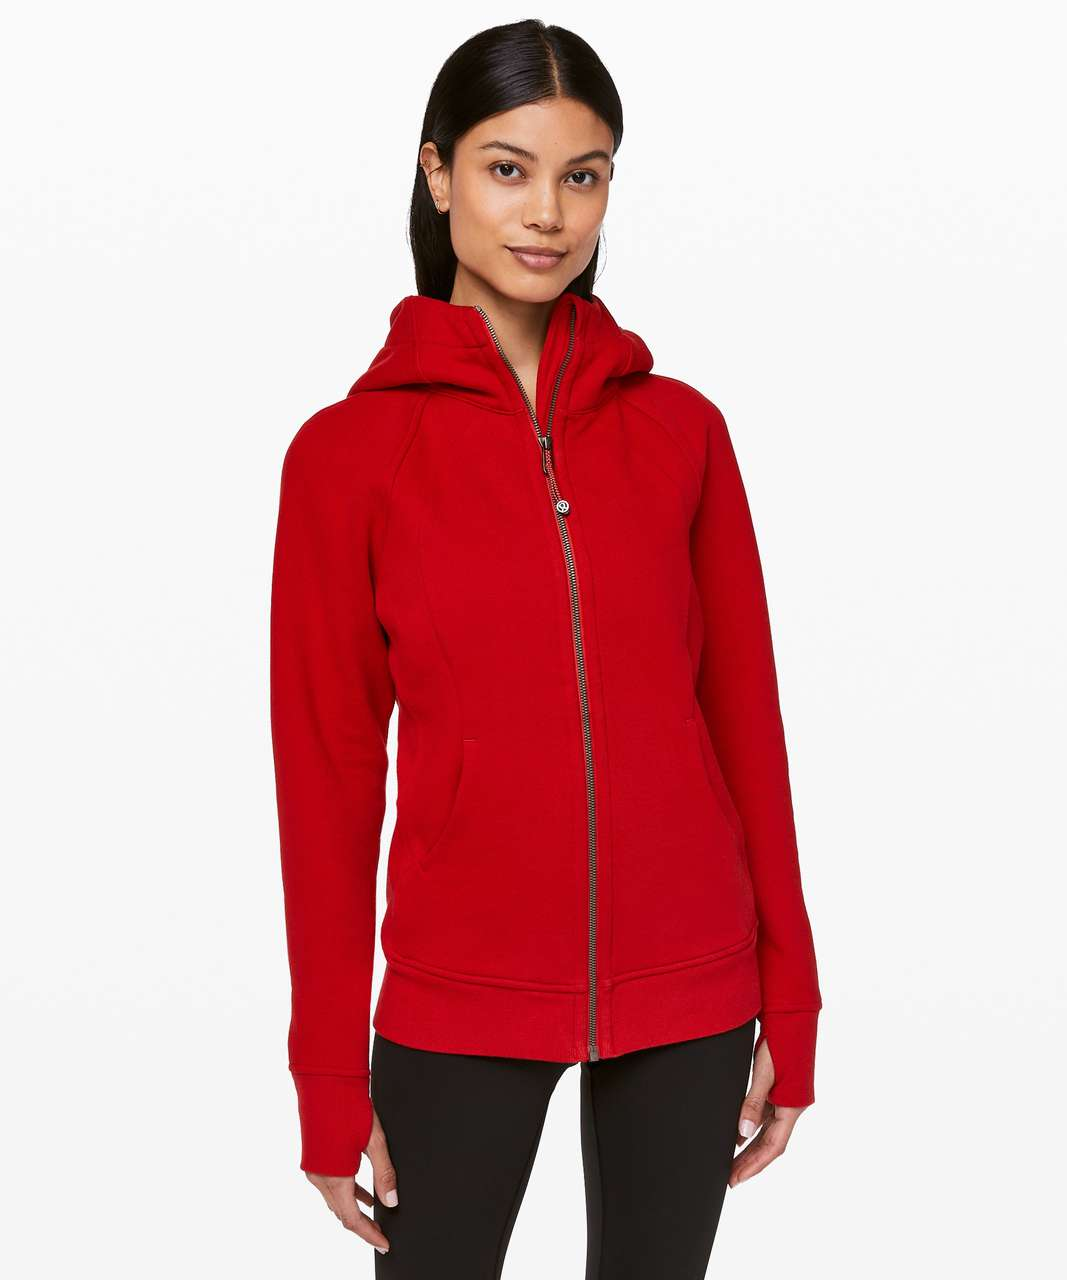 Lululemon Scuba Hoodie *Light Cotton Fleece - Dark Red